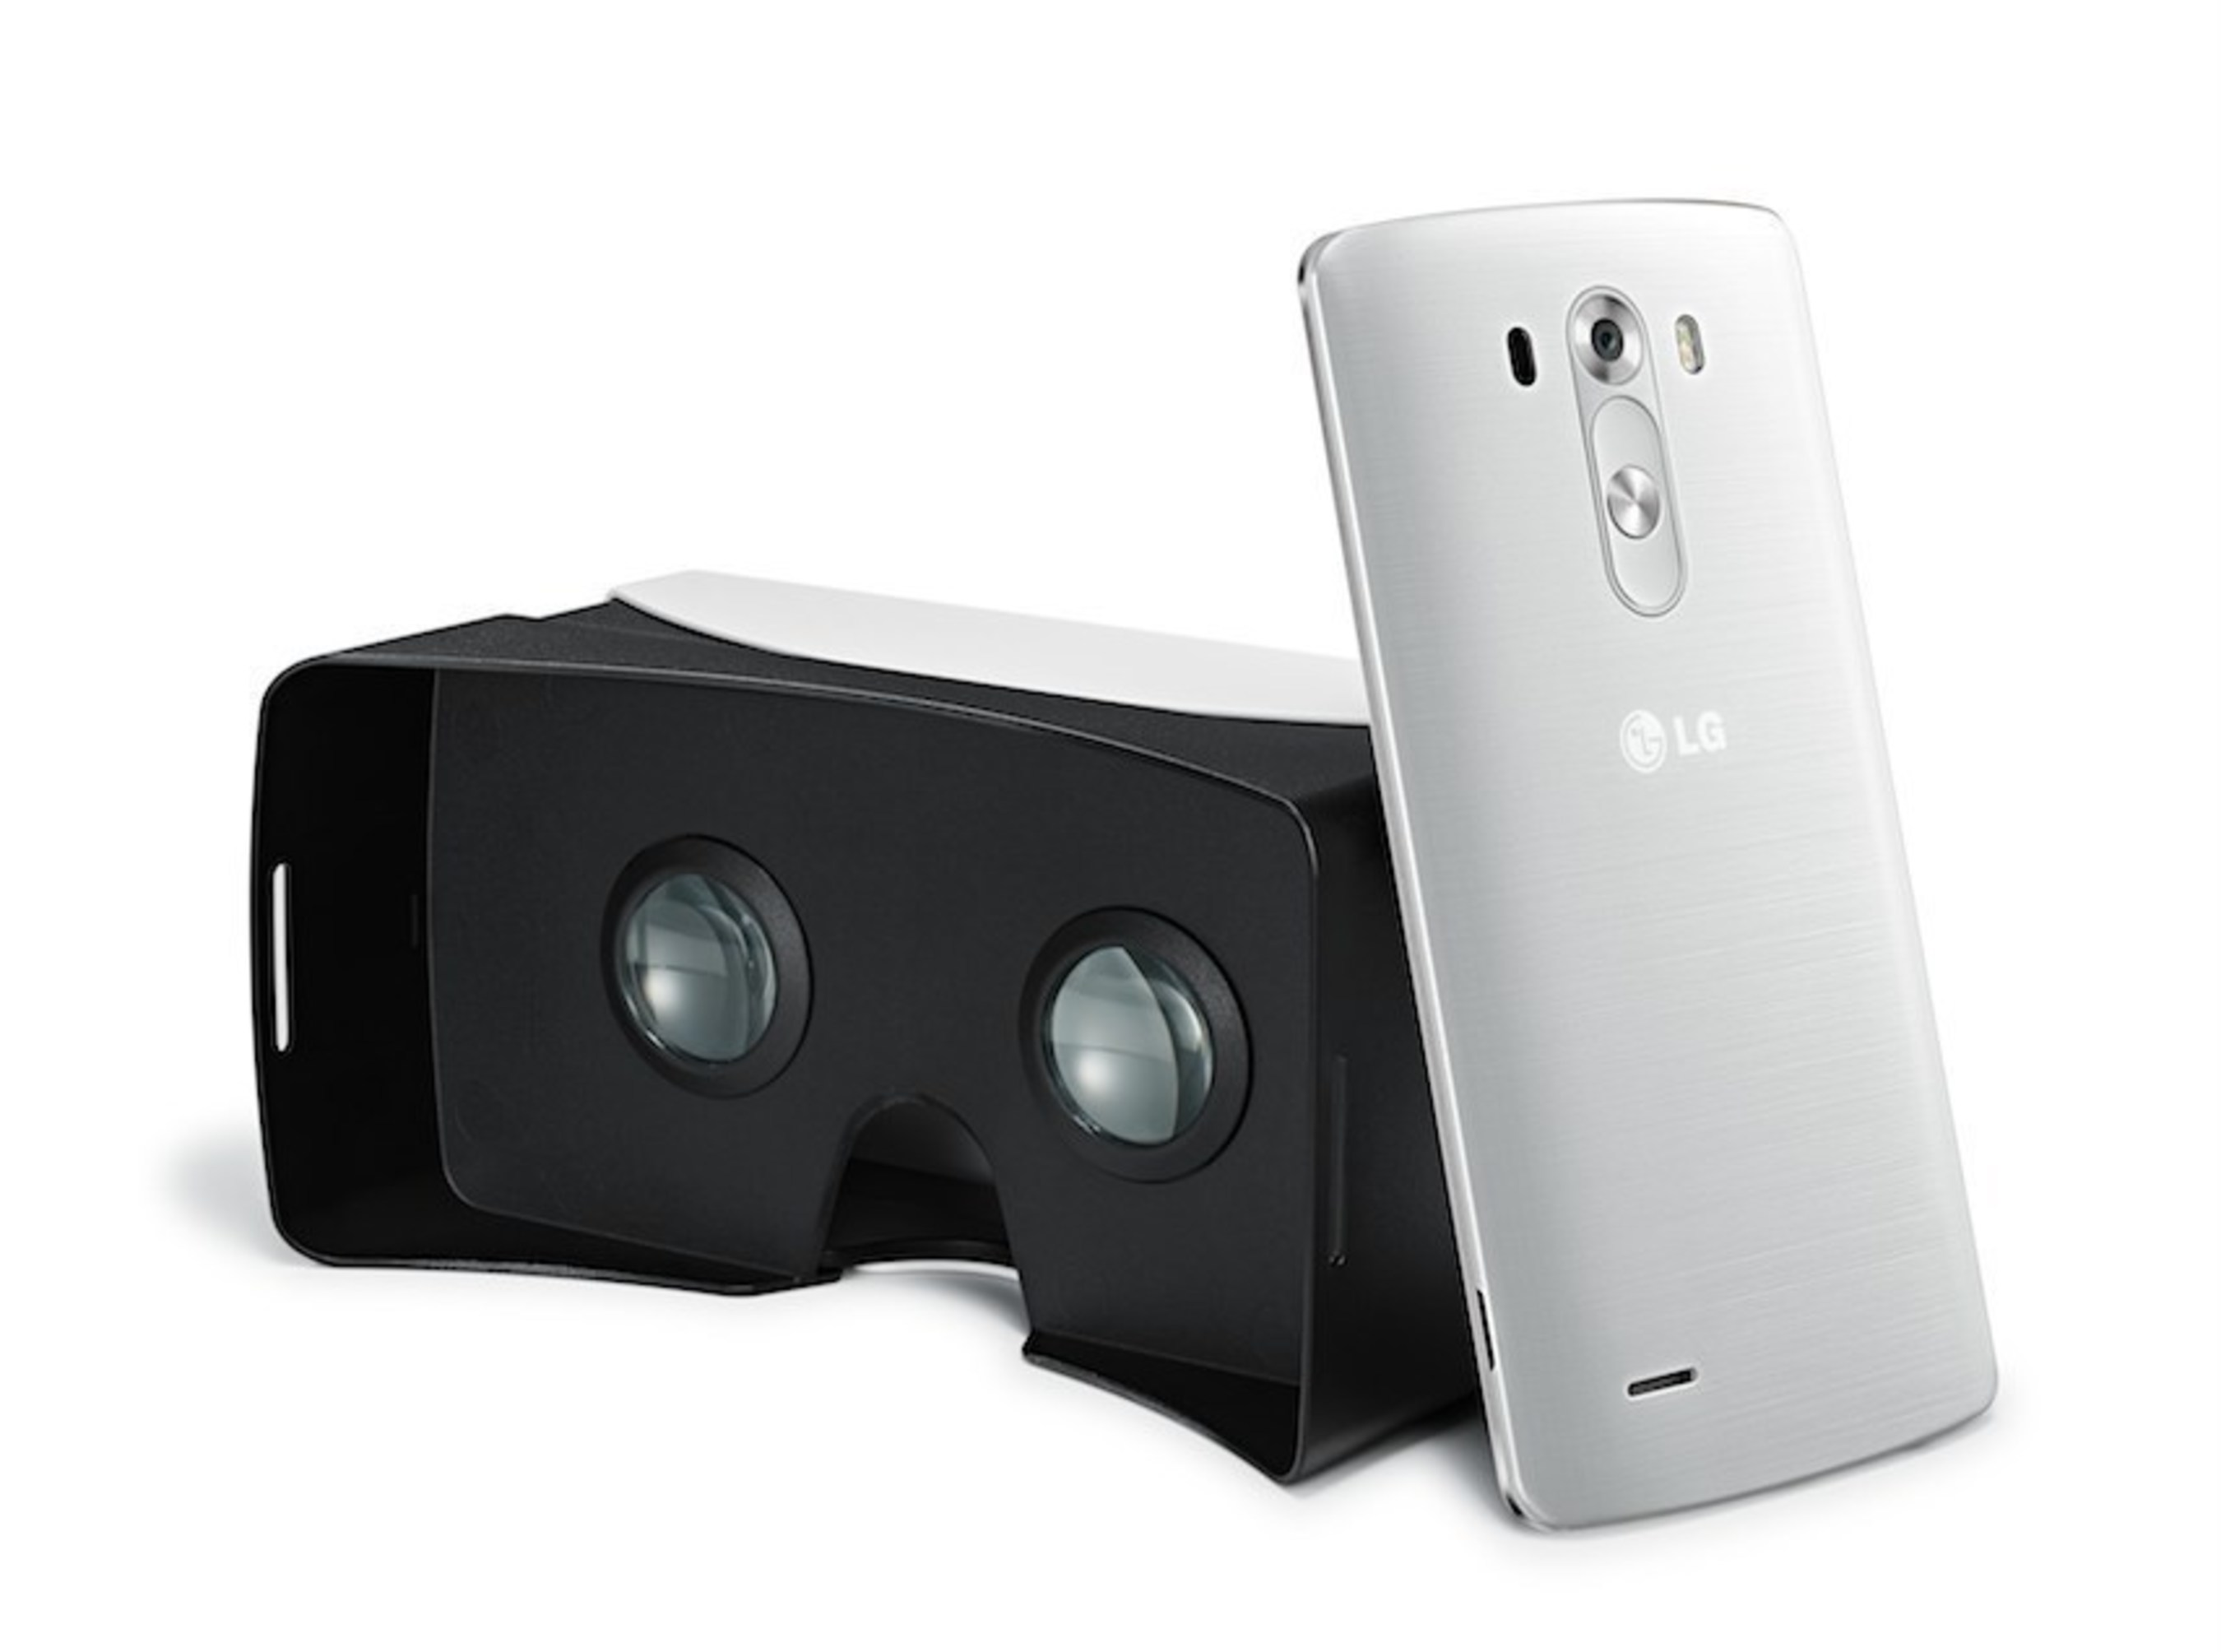 VR Headset For LG G3 Now Available